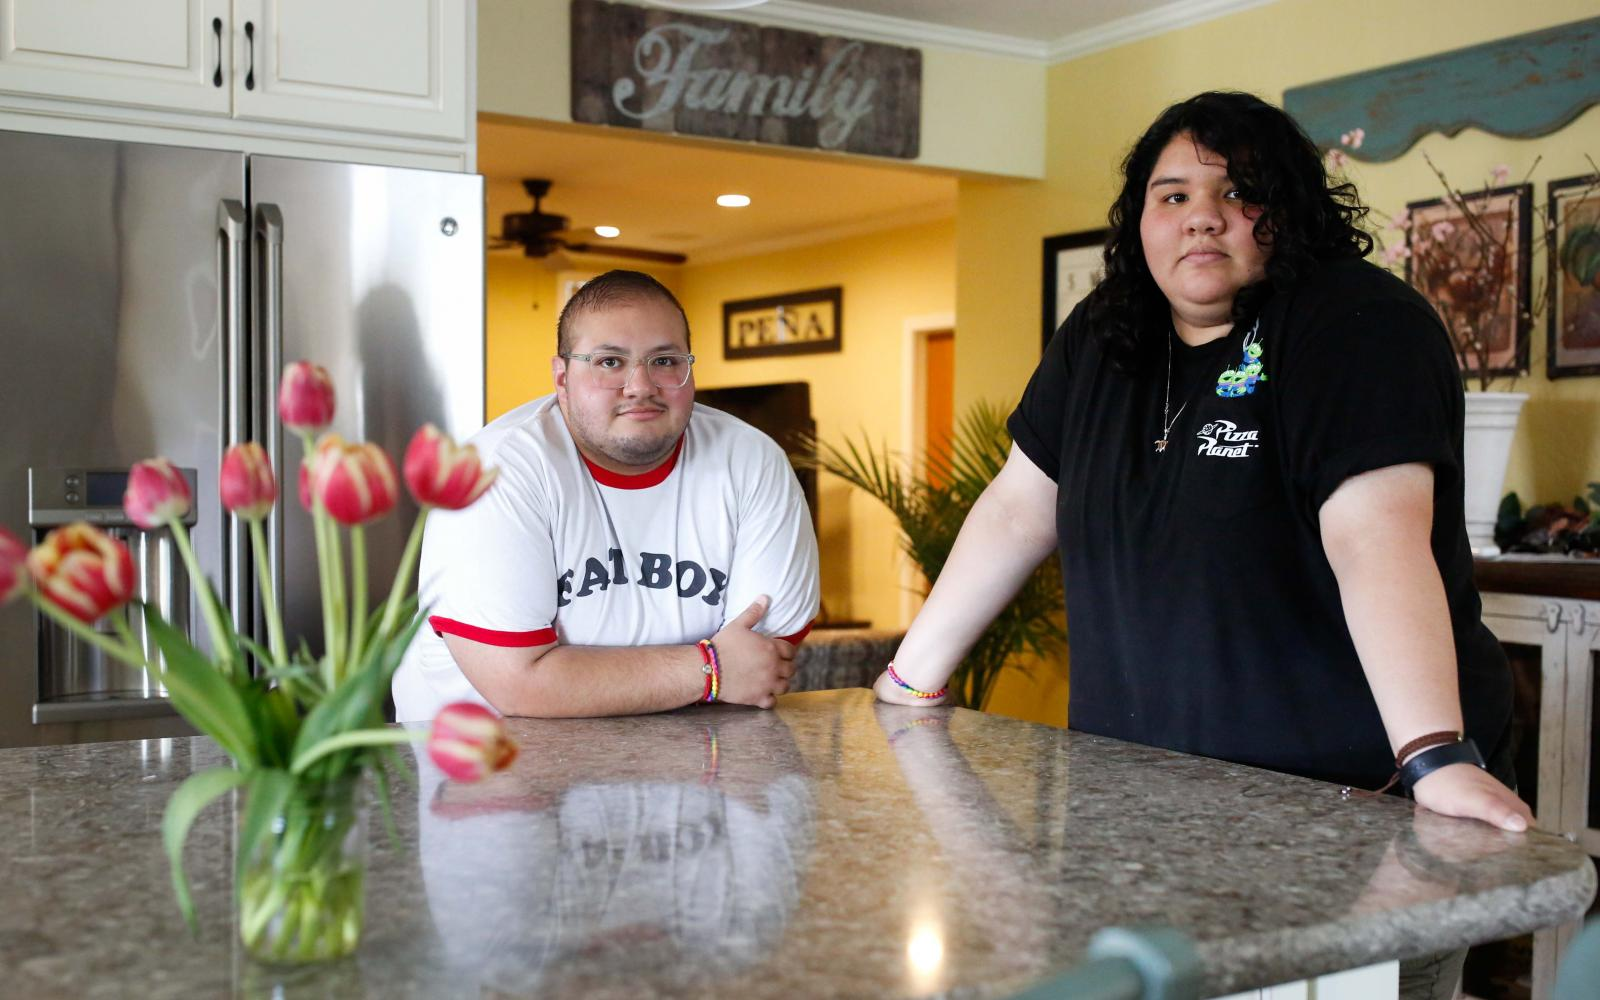 Frank Peña, 27, and sister Alejandra, 23, both live at home in their parent's house on Tuesday, May 14, 2019 in San Jose, Calif.